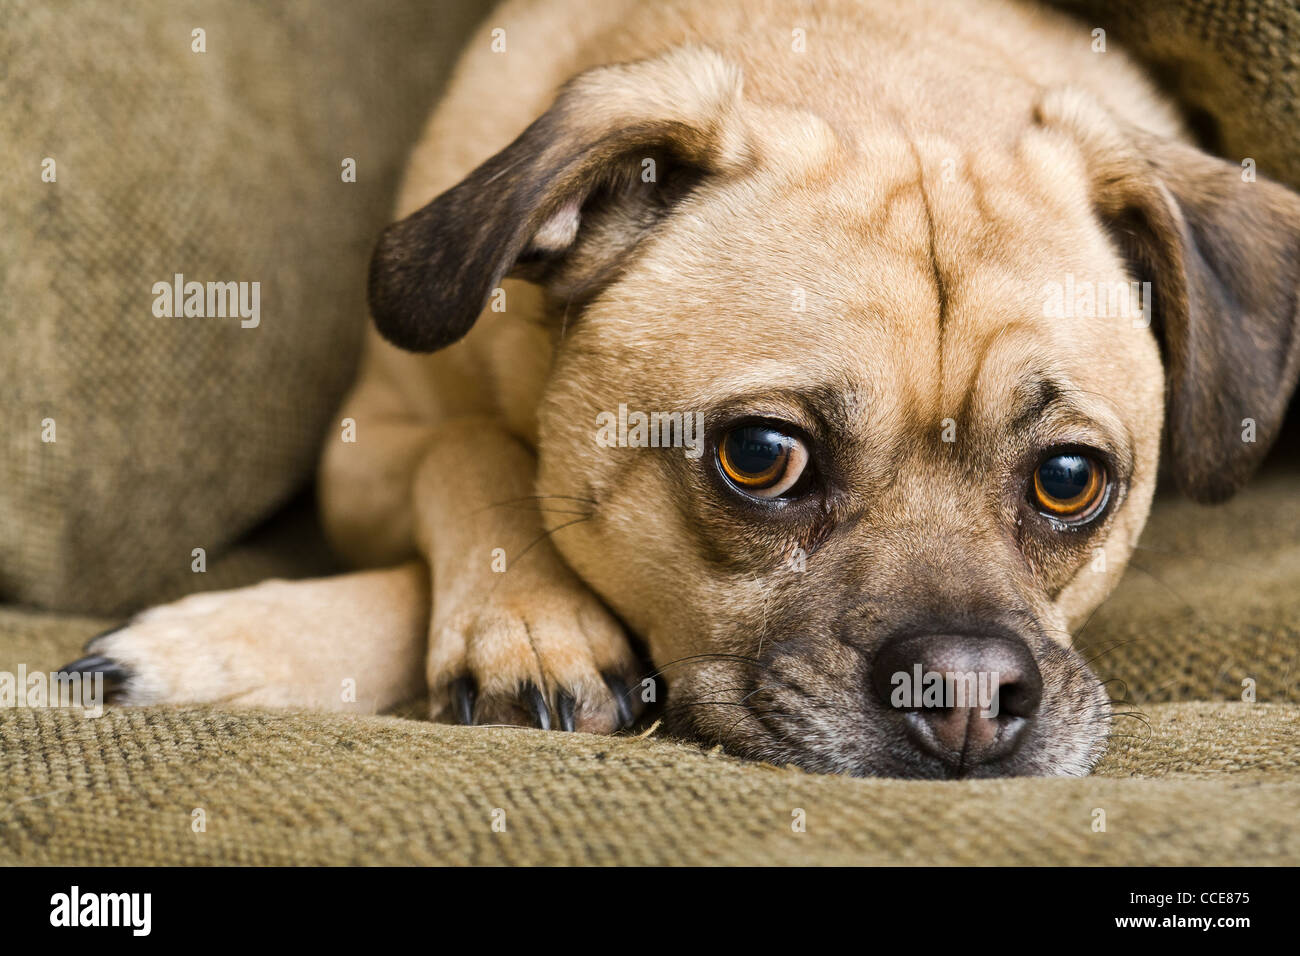 Closeup of a relaxed dog on sofa. - Stock Image